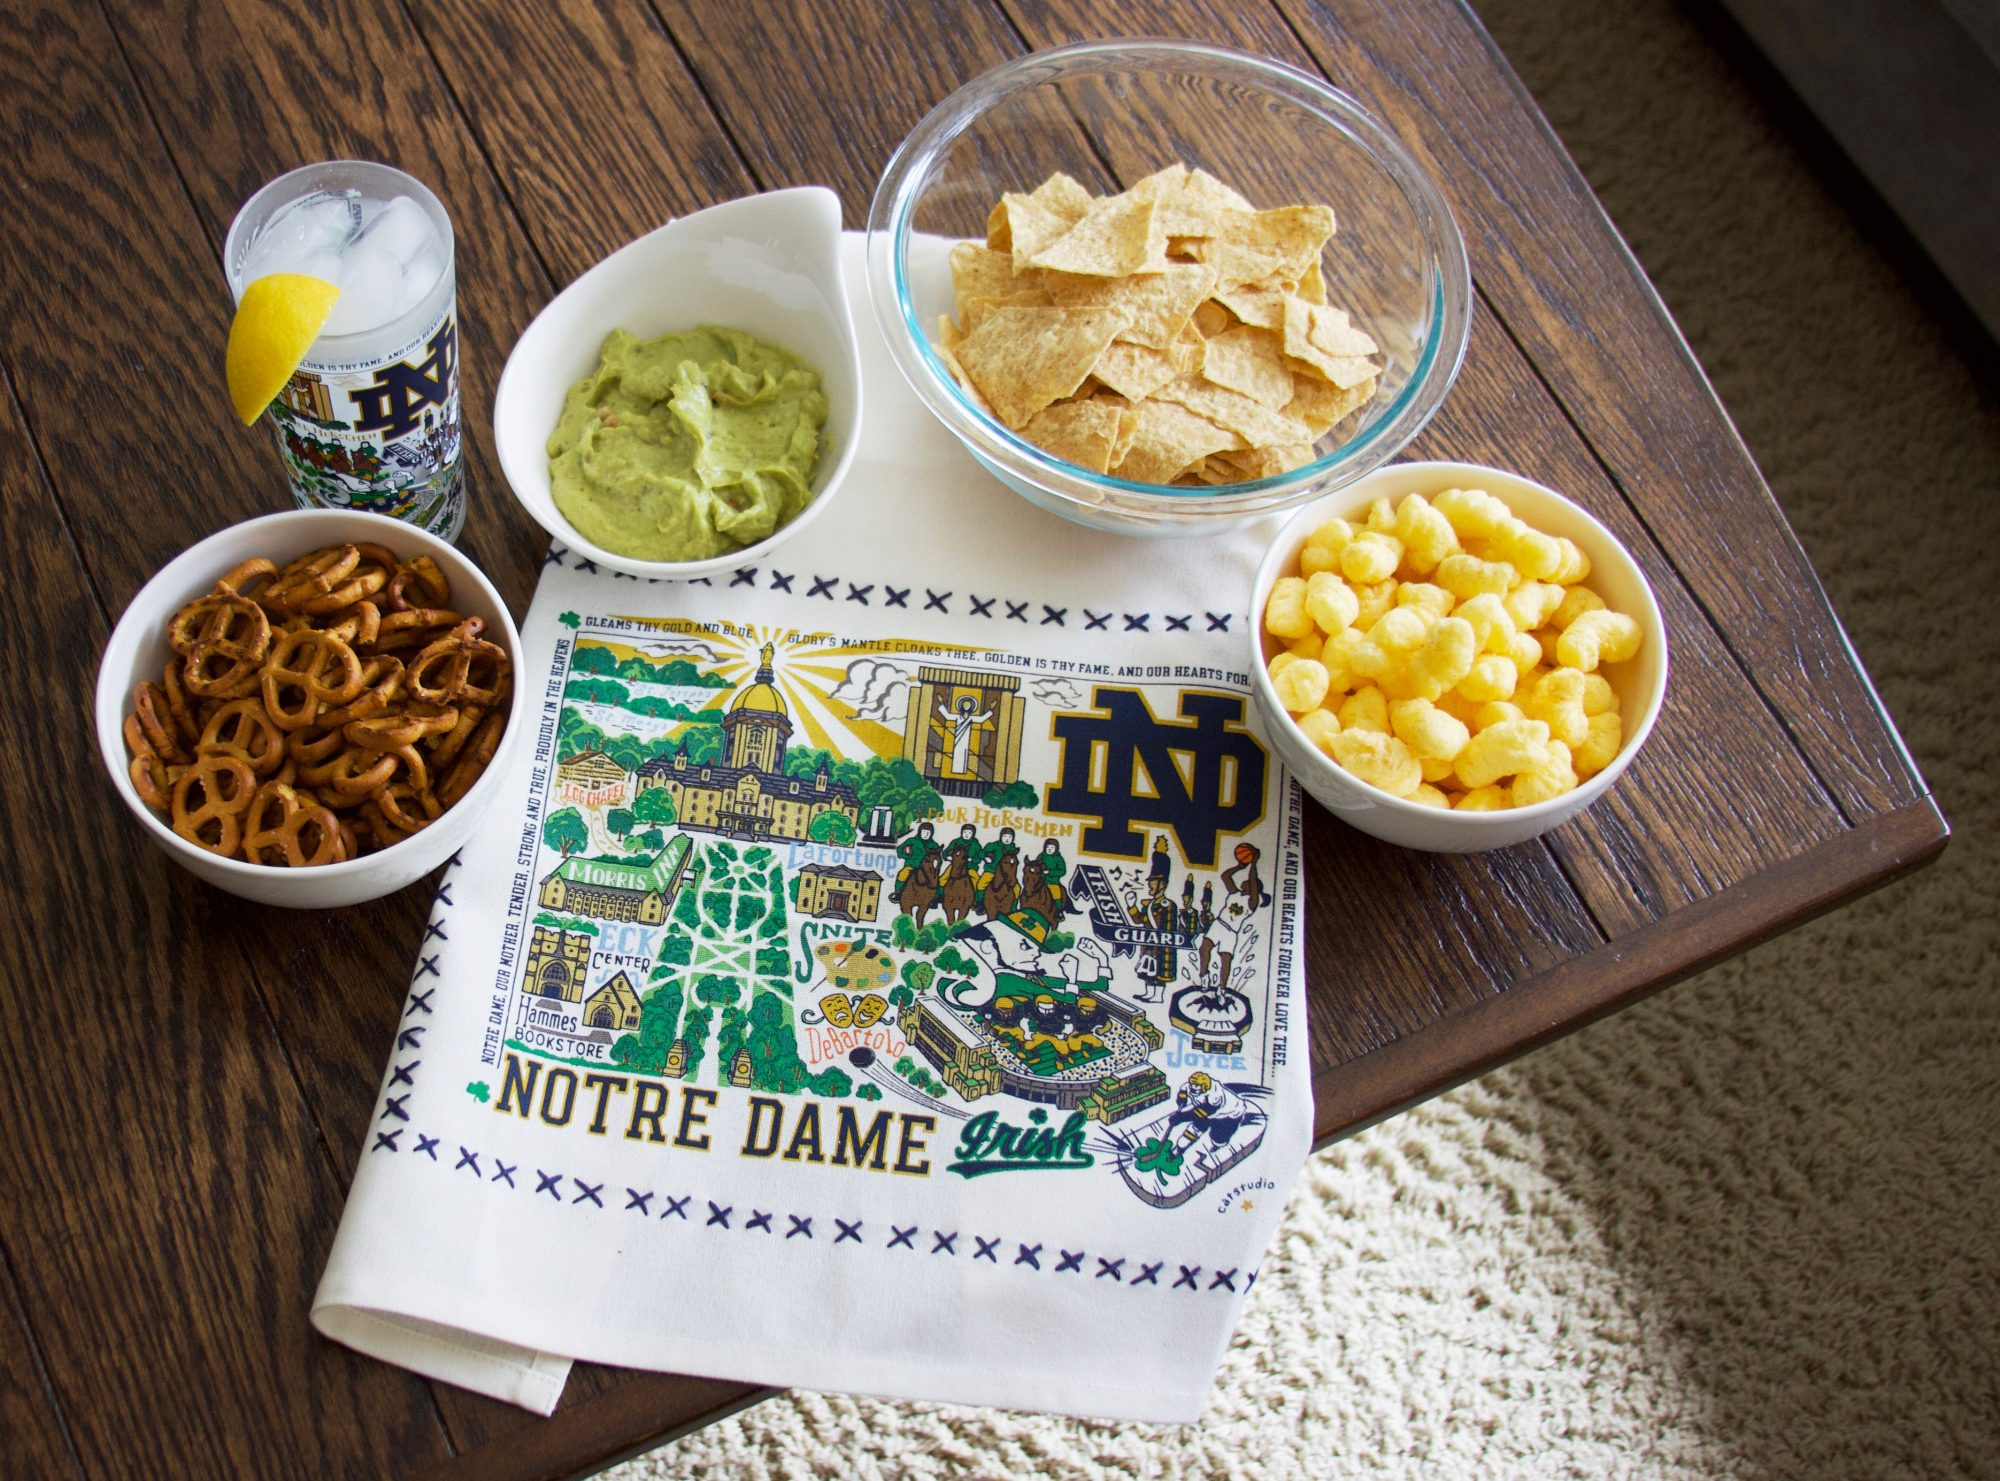 notre dame patterned towel on a table with chips and dip